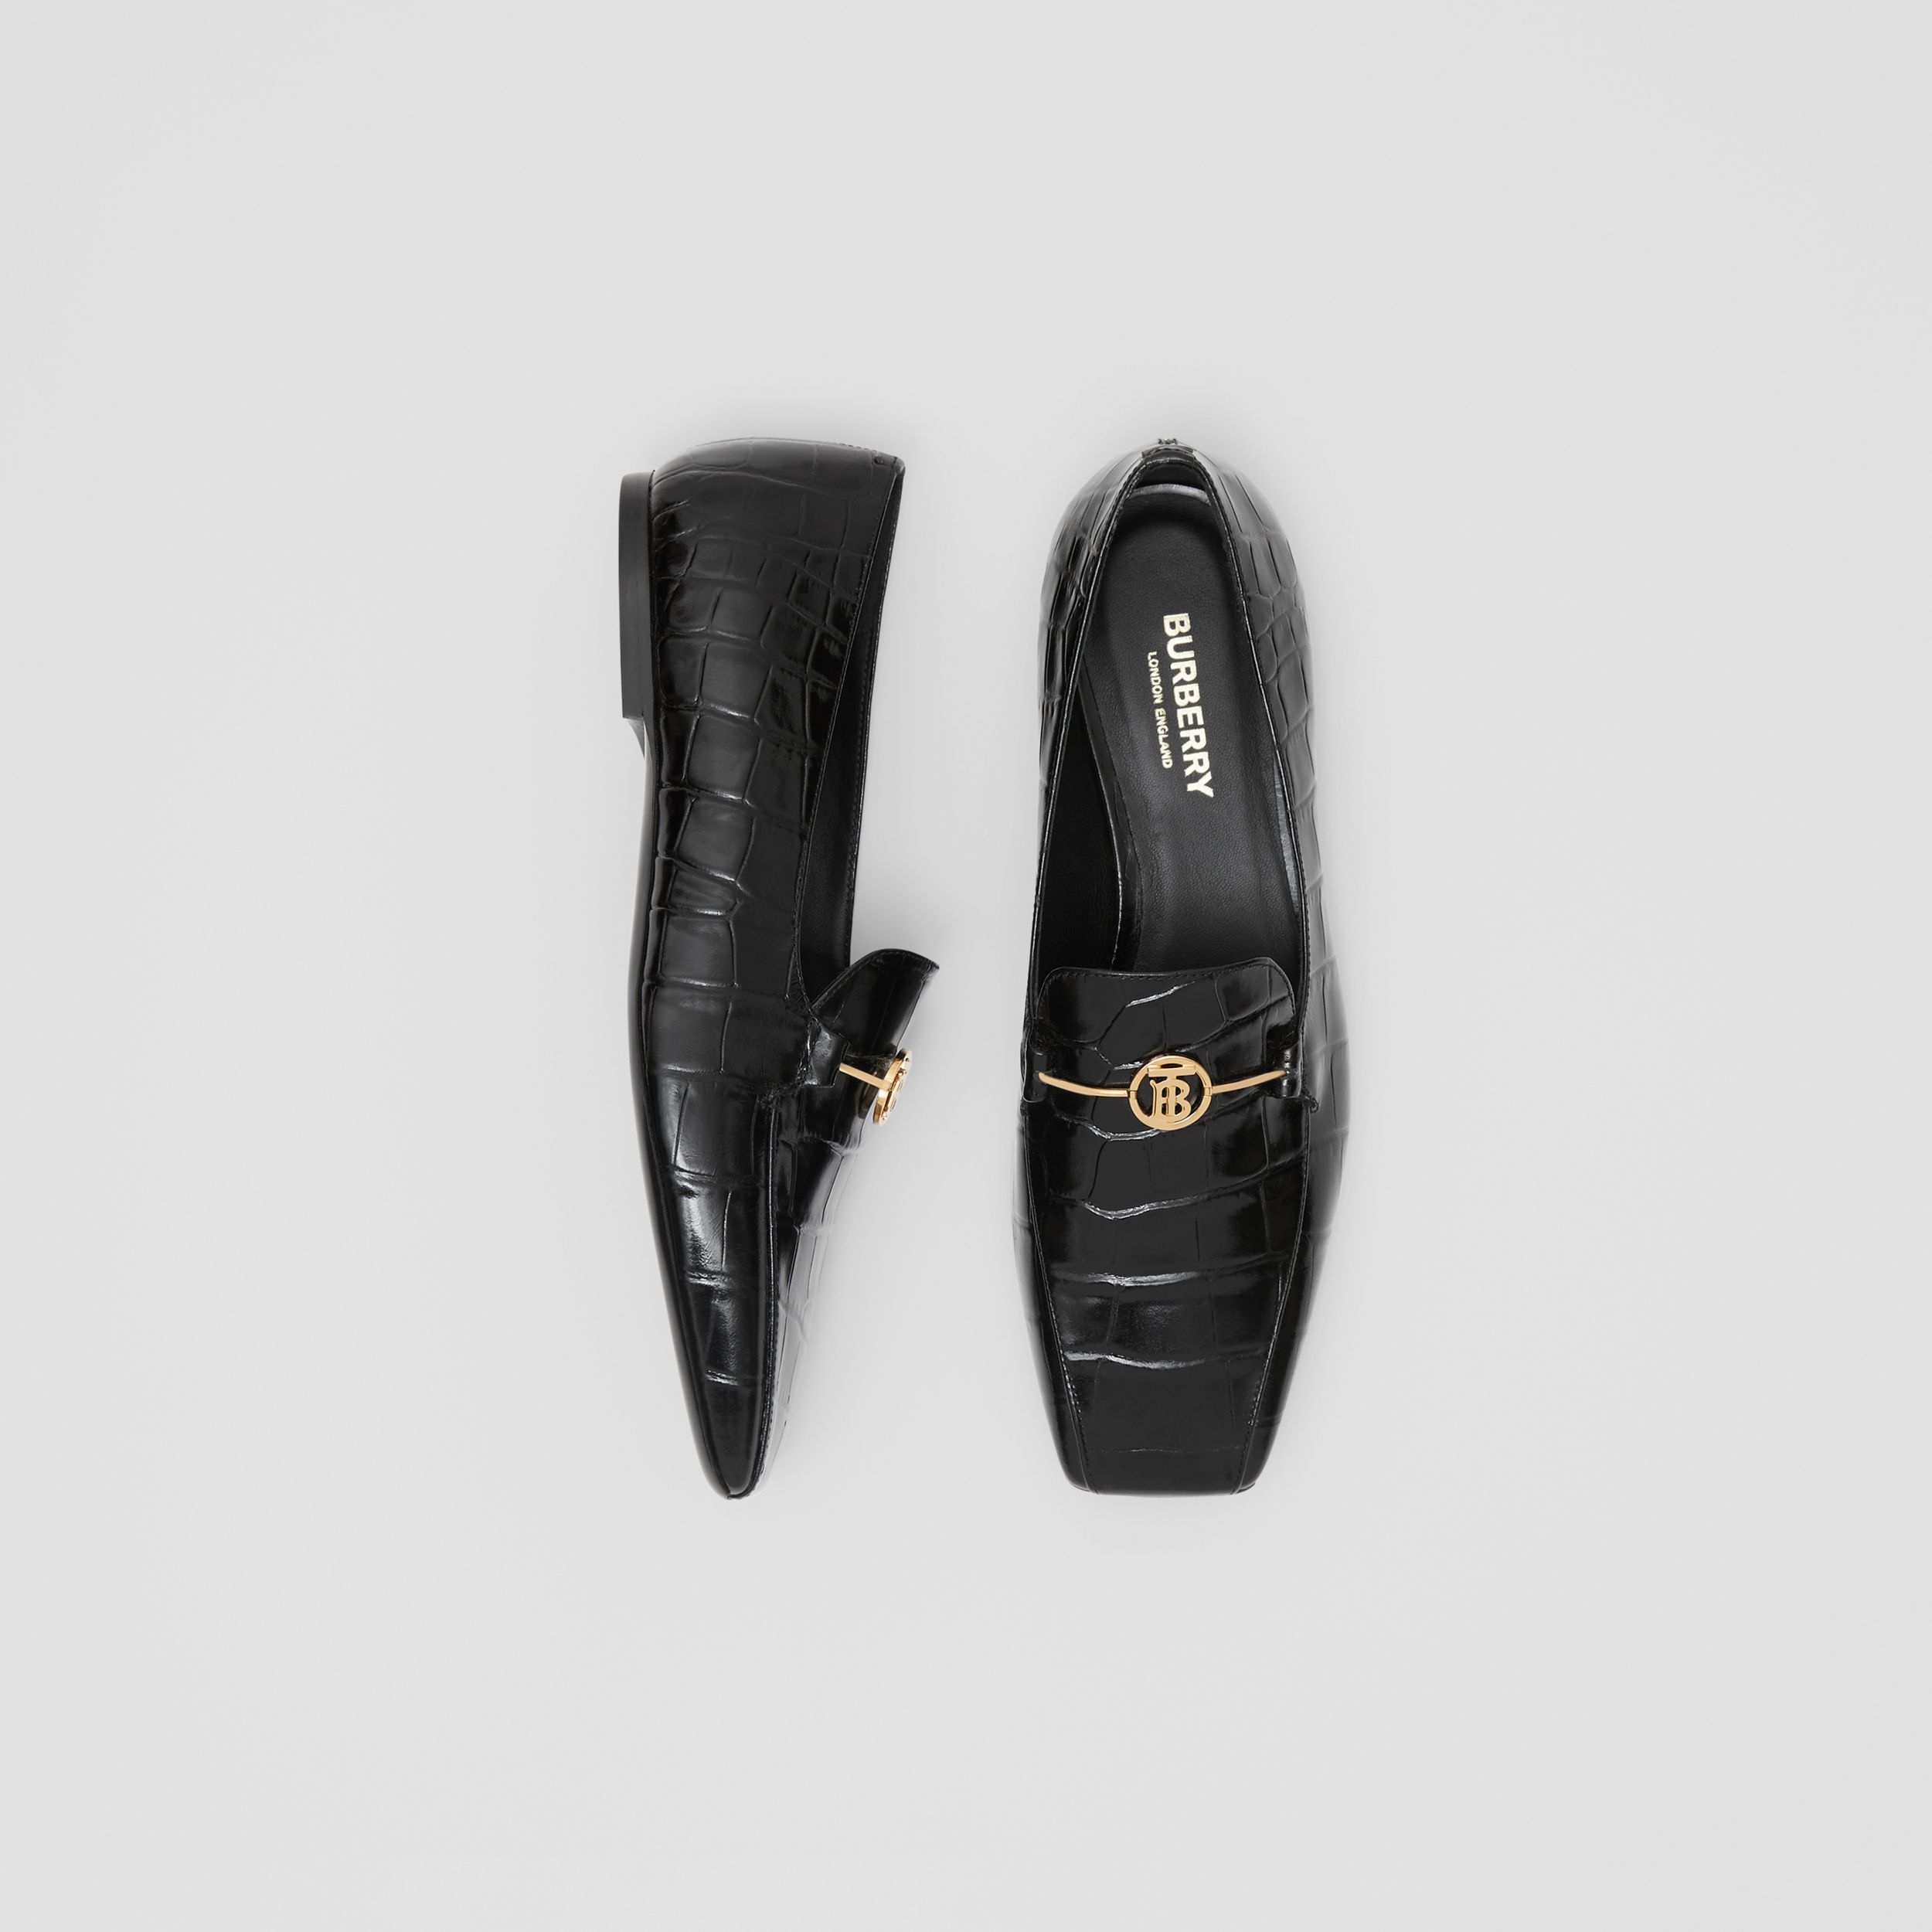 Monogram Motif Embossed Leather Loafers in Black - Women | Burberry - 1